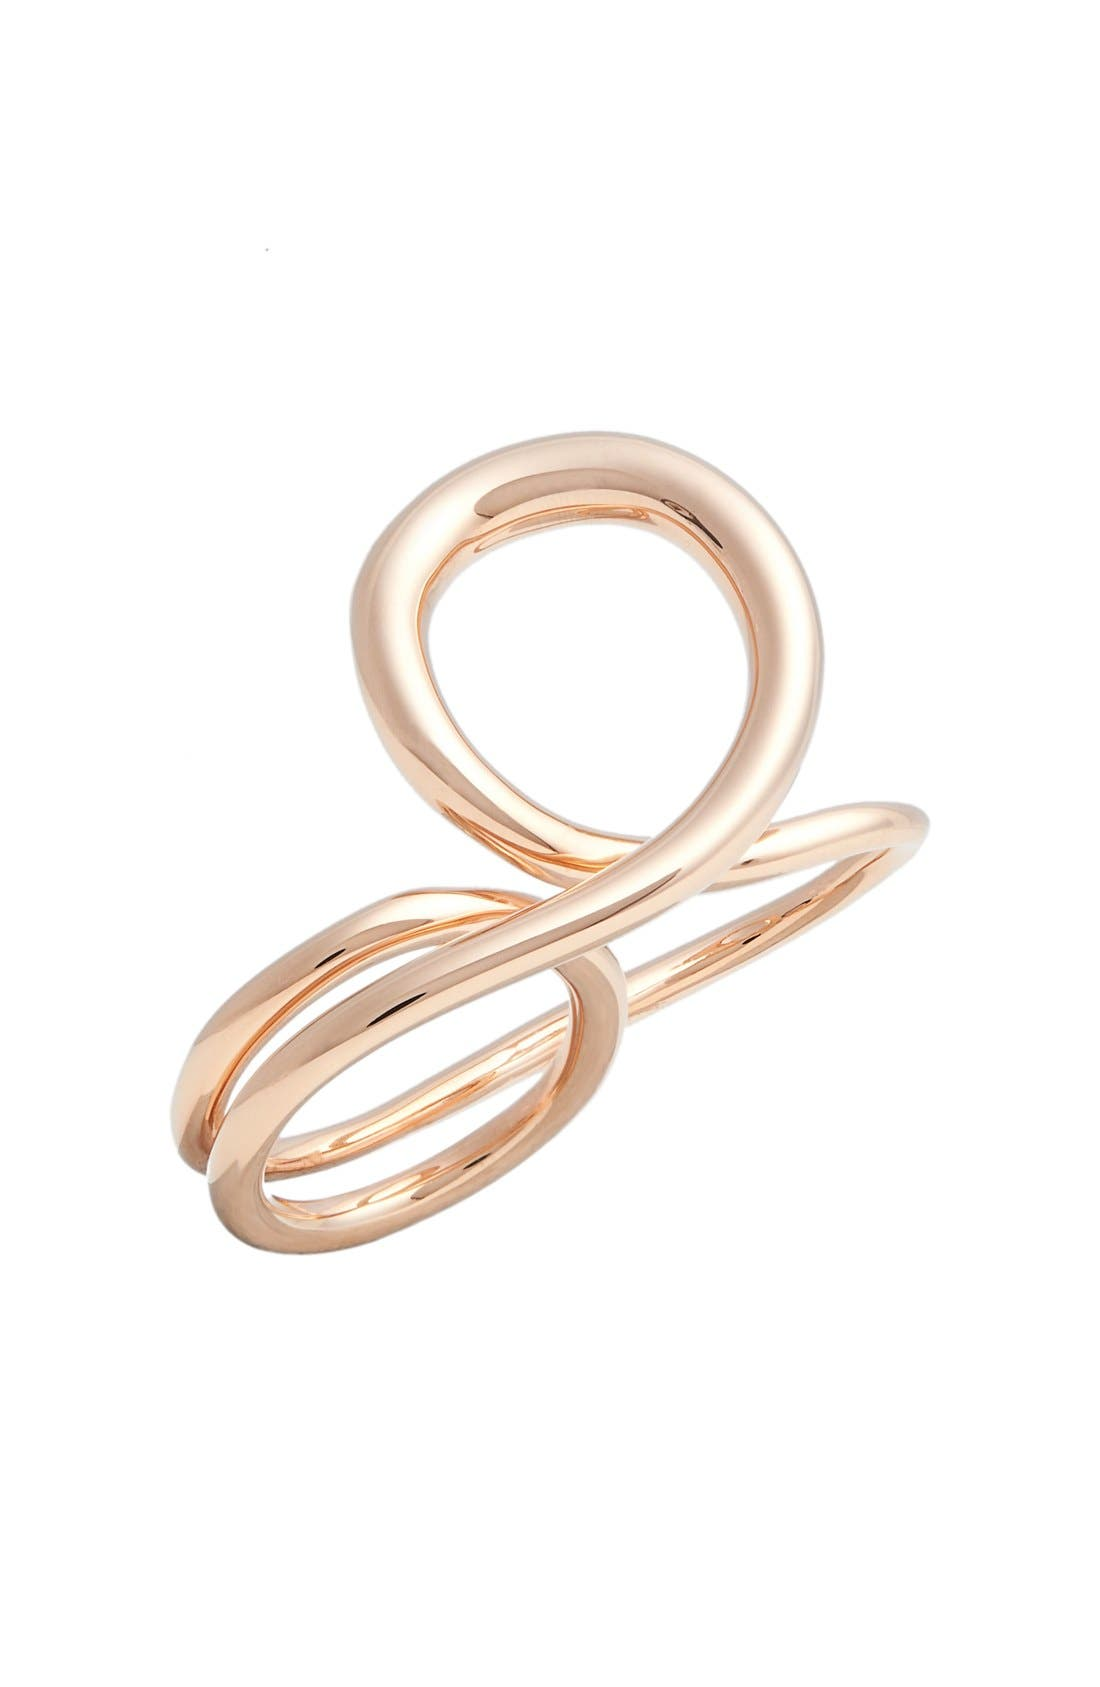 Alternate Image 1 Selected - Charlotte Chesnais 'Gamma Trip' Vermeil Two-Finger Ring